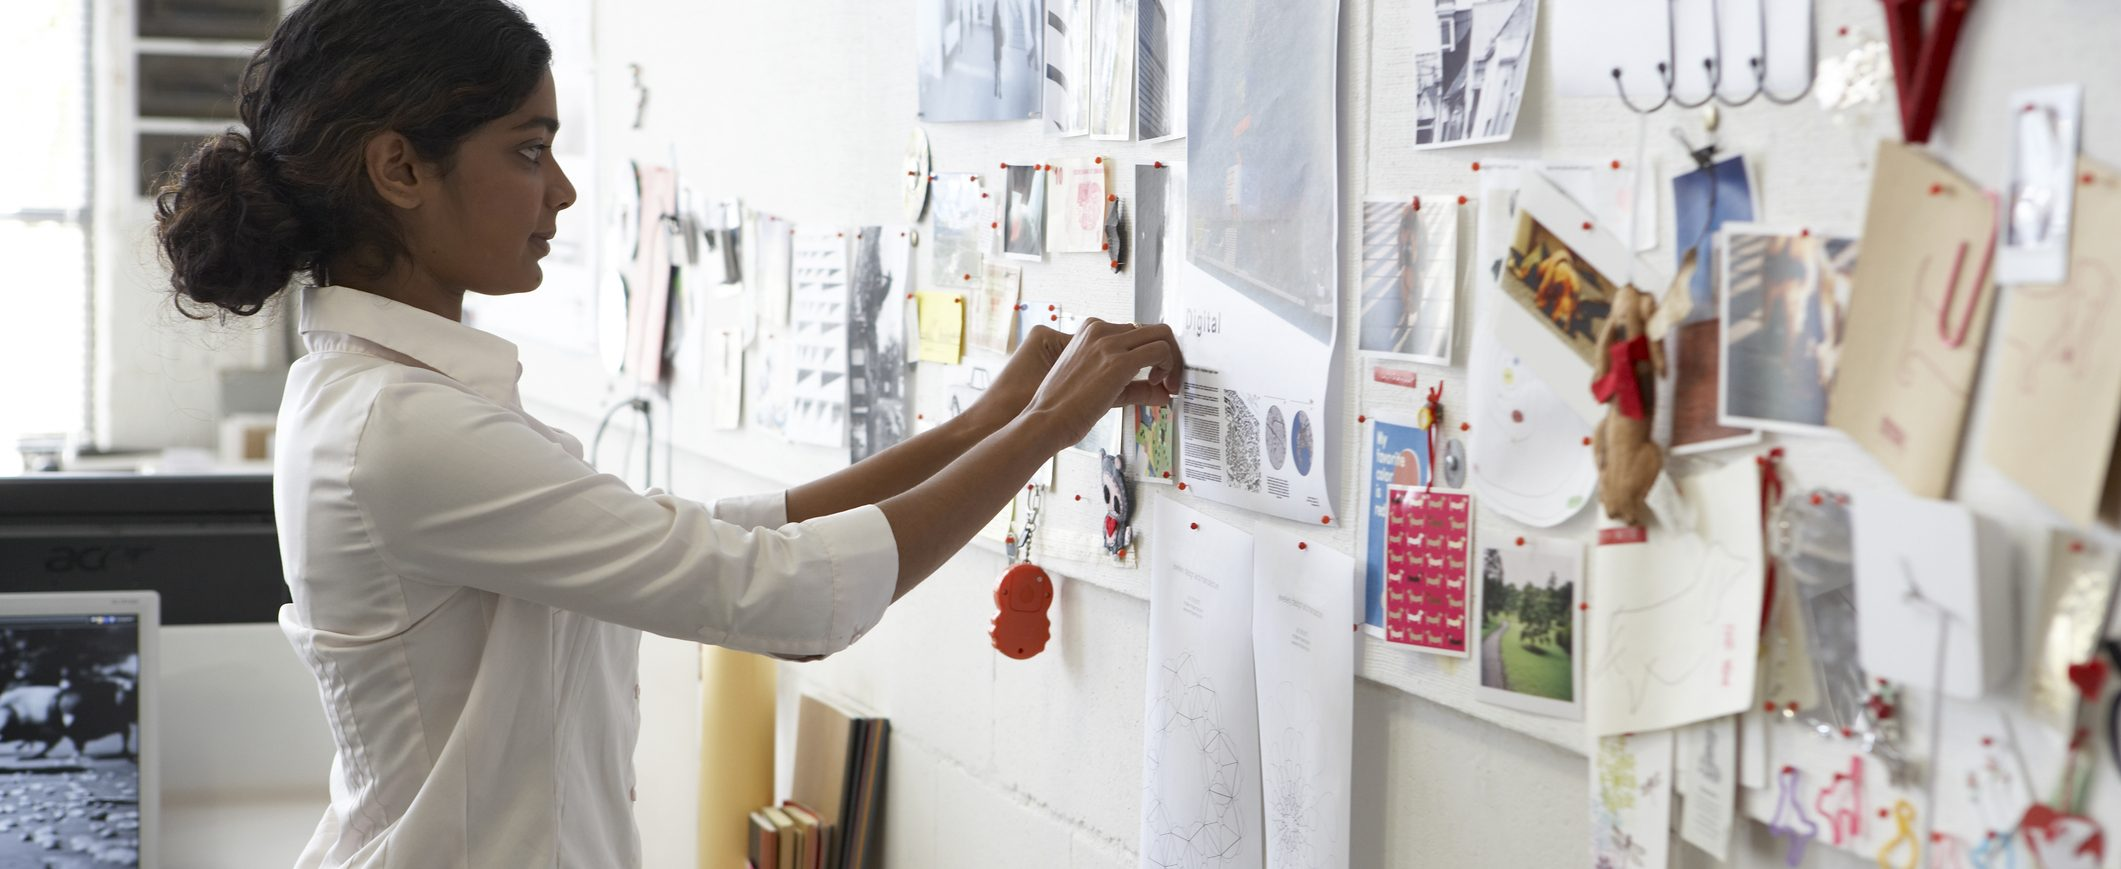 Creating a vision board can help you visualize your savings goal